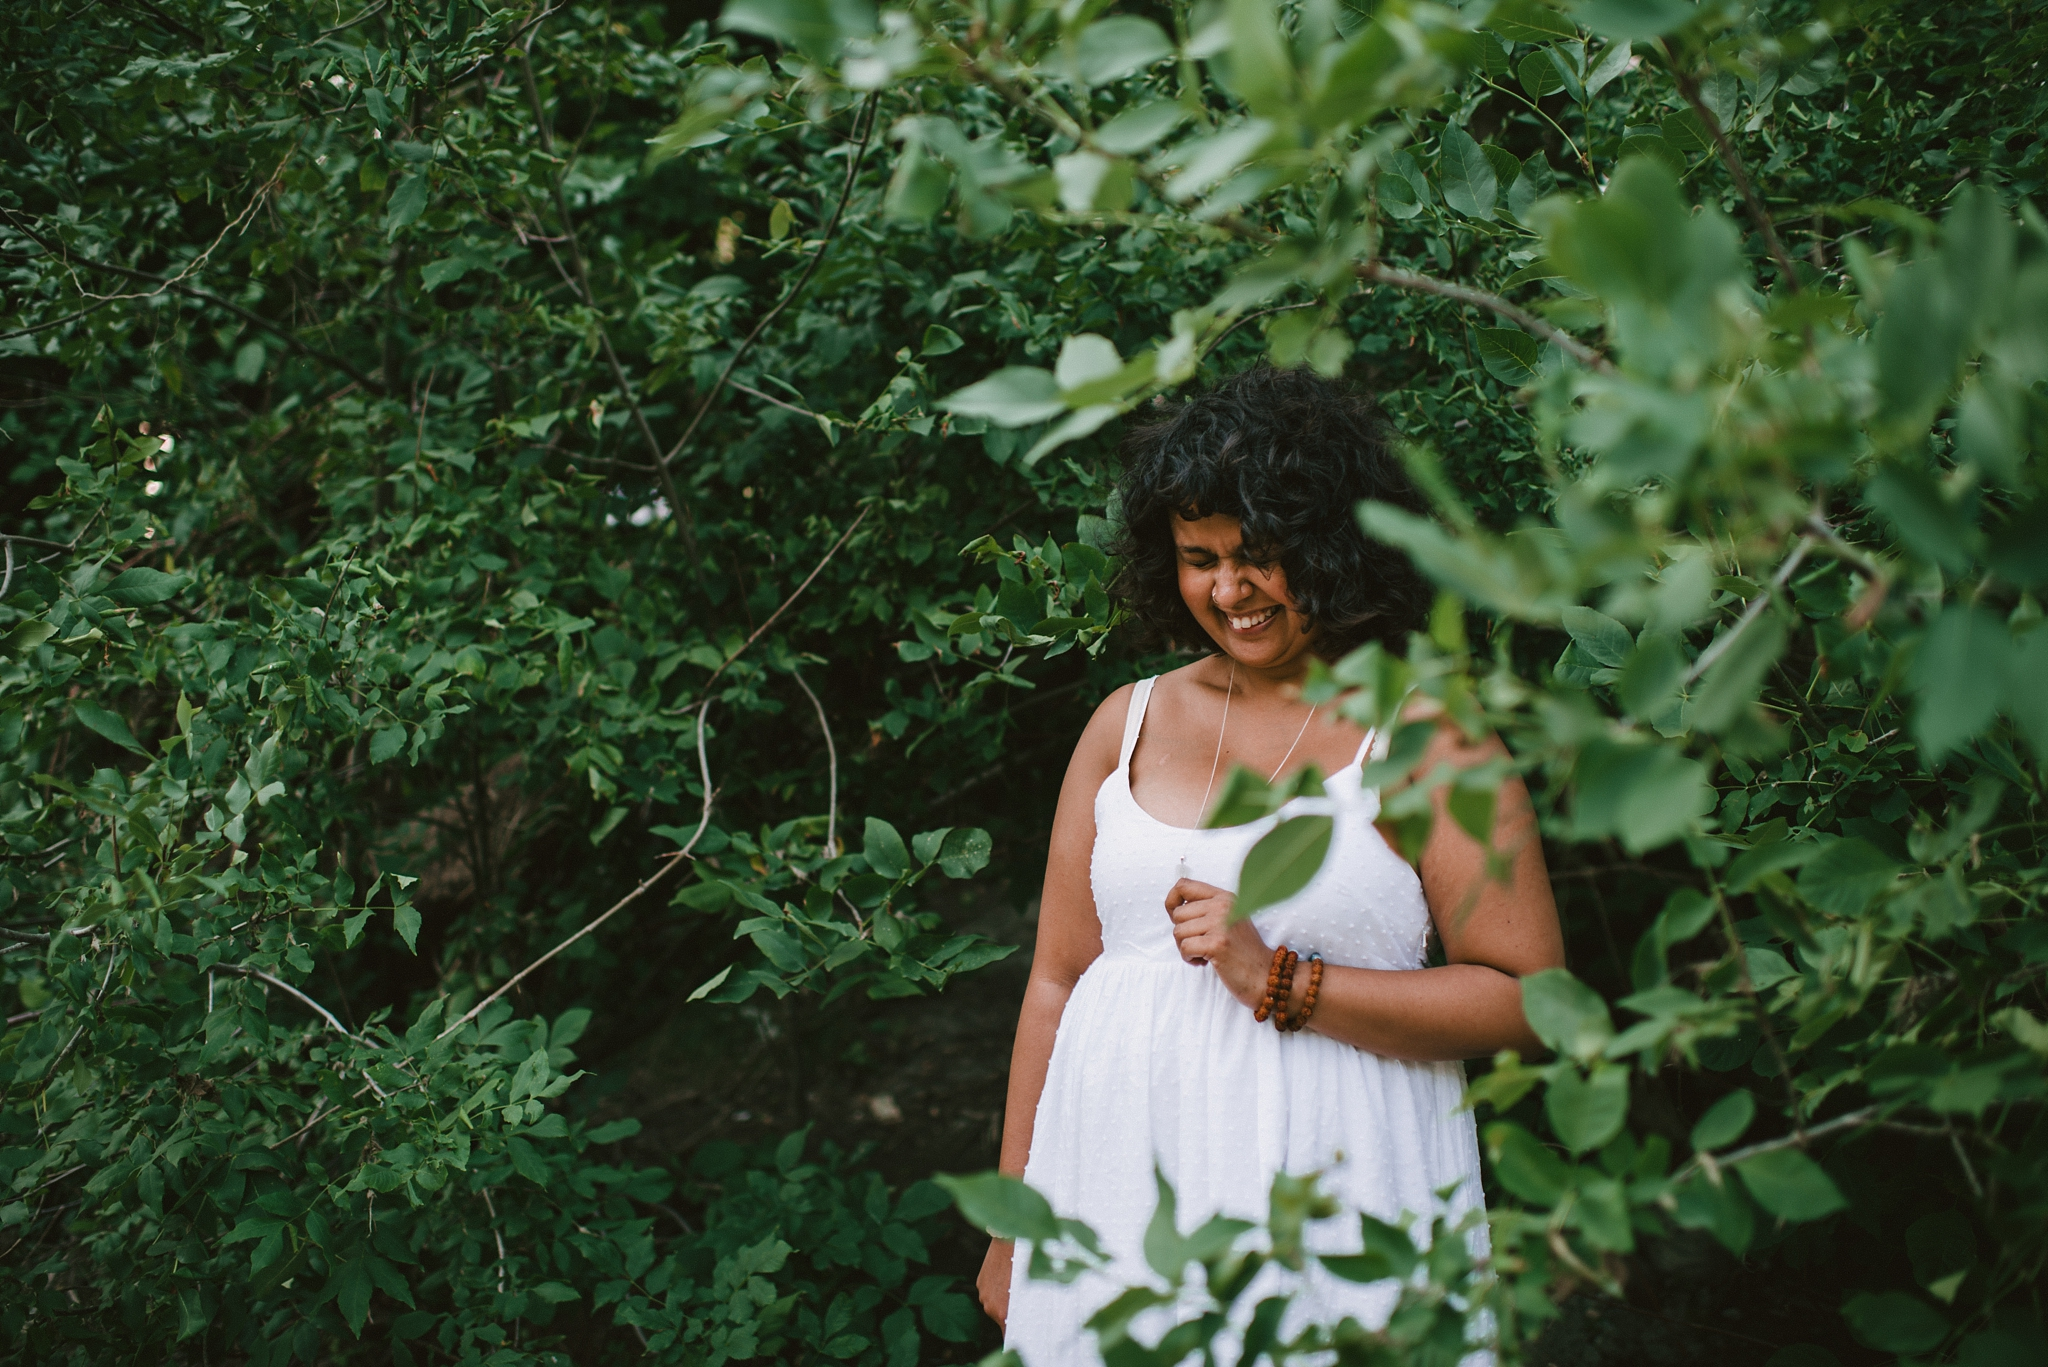 kaihla_tonai_intimate_wedding_elopement_photographer_0046